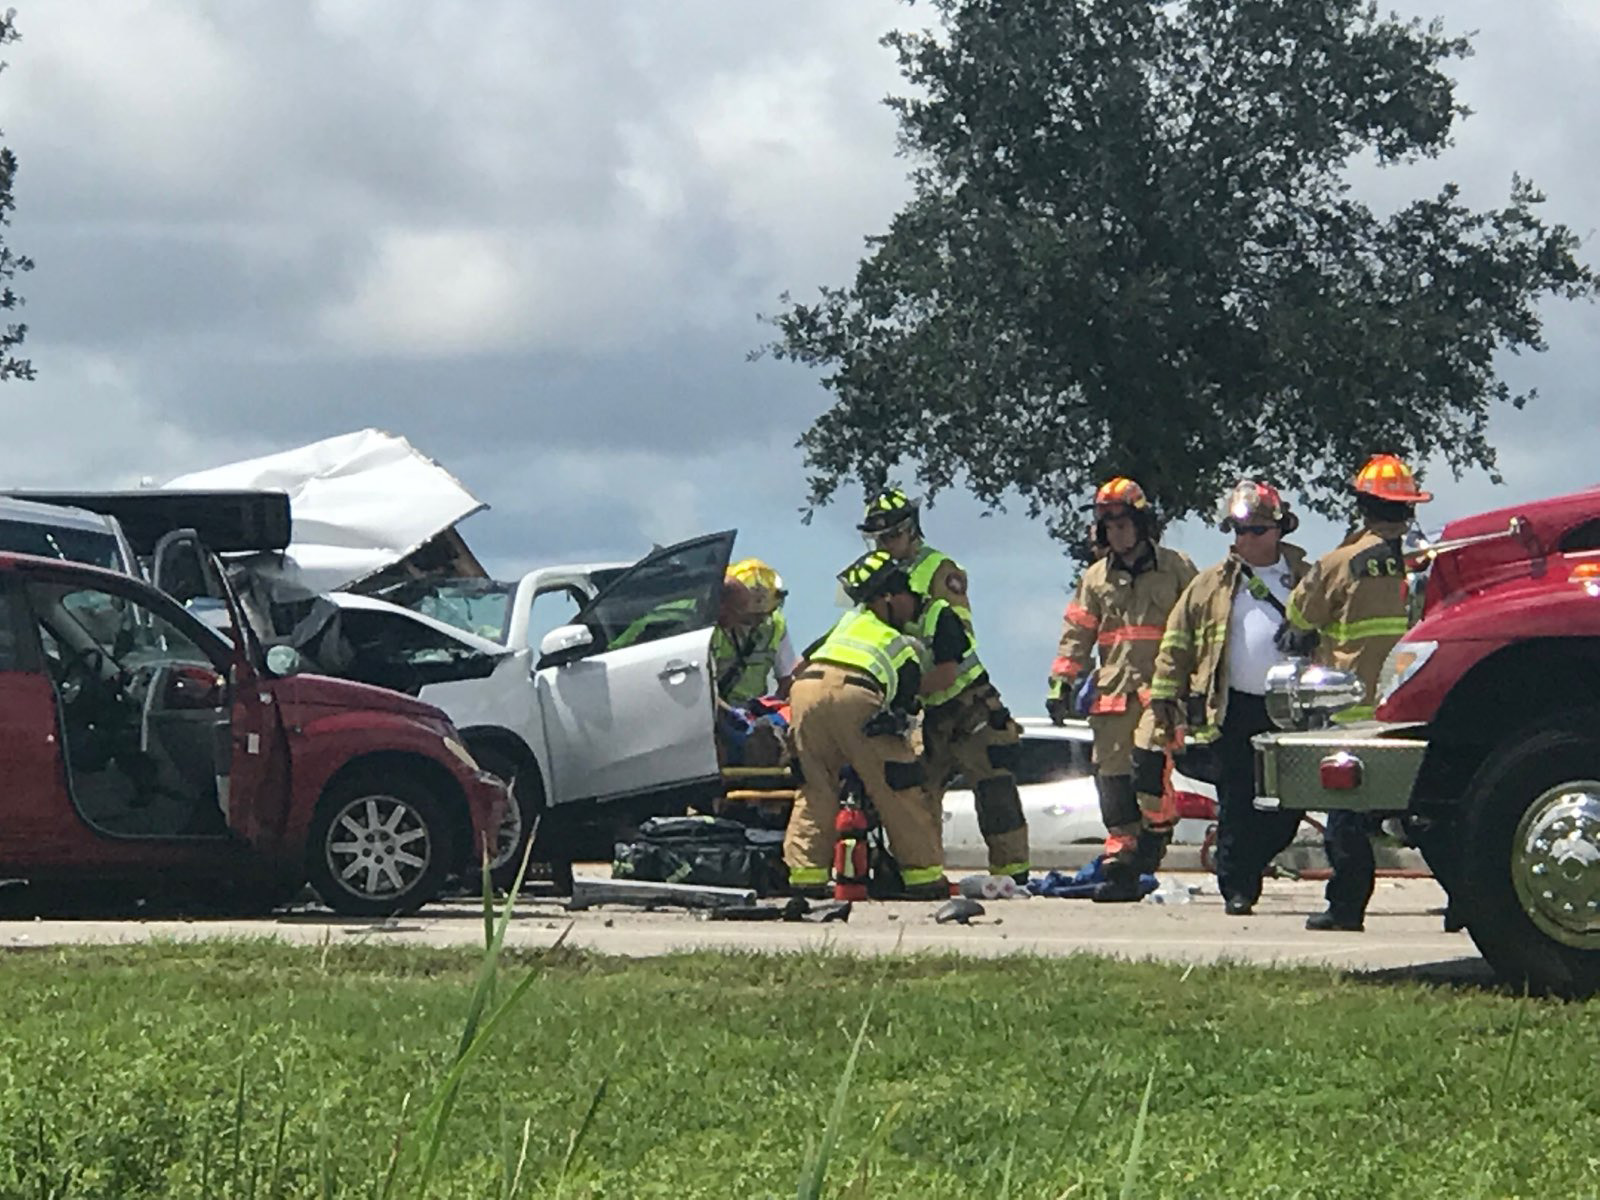 7 Injured In 8-Vehicle Truck Crash On Fruitville Road In Sarasota